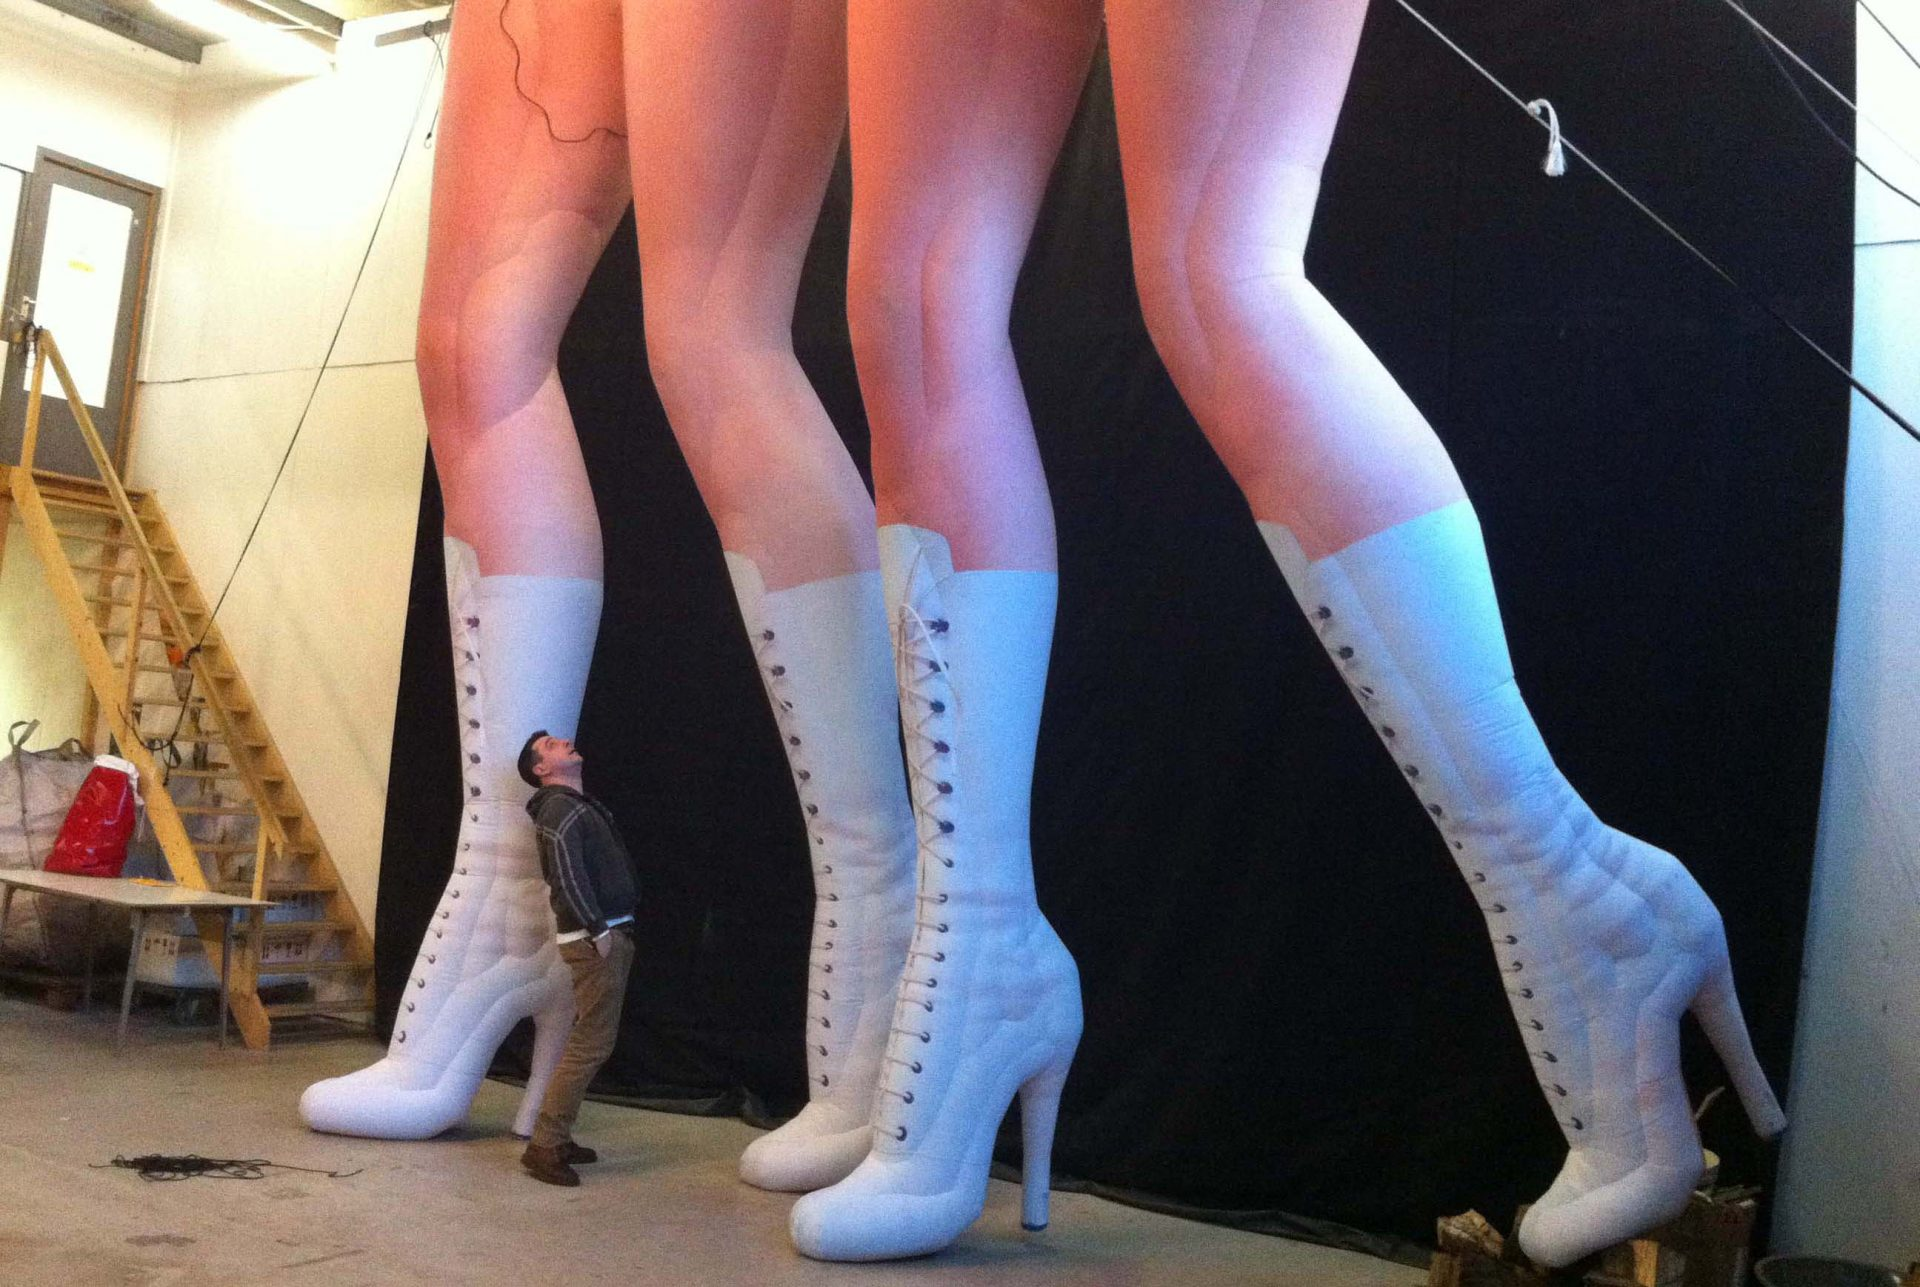 5m inflatable legs in knee-high boots Airworks Rentals